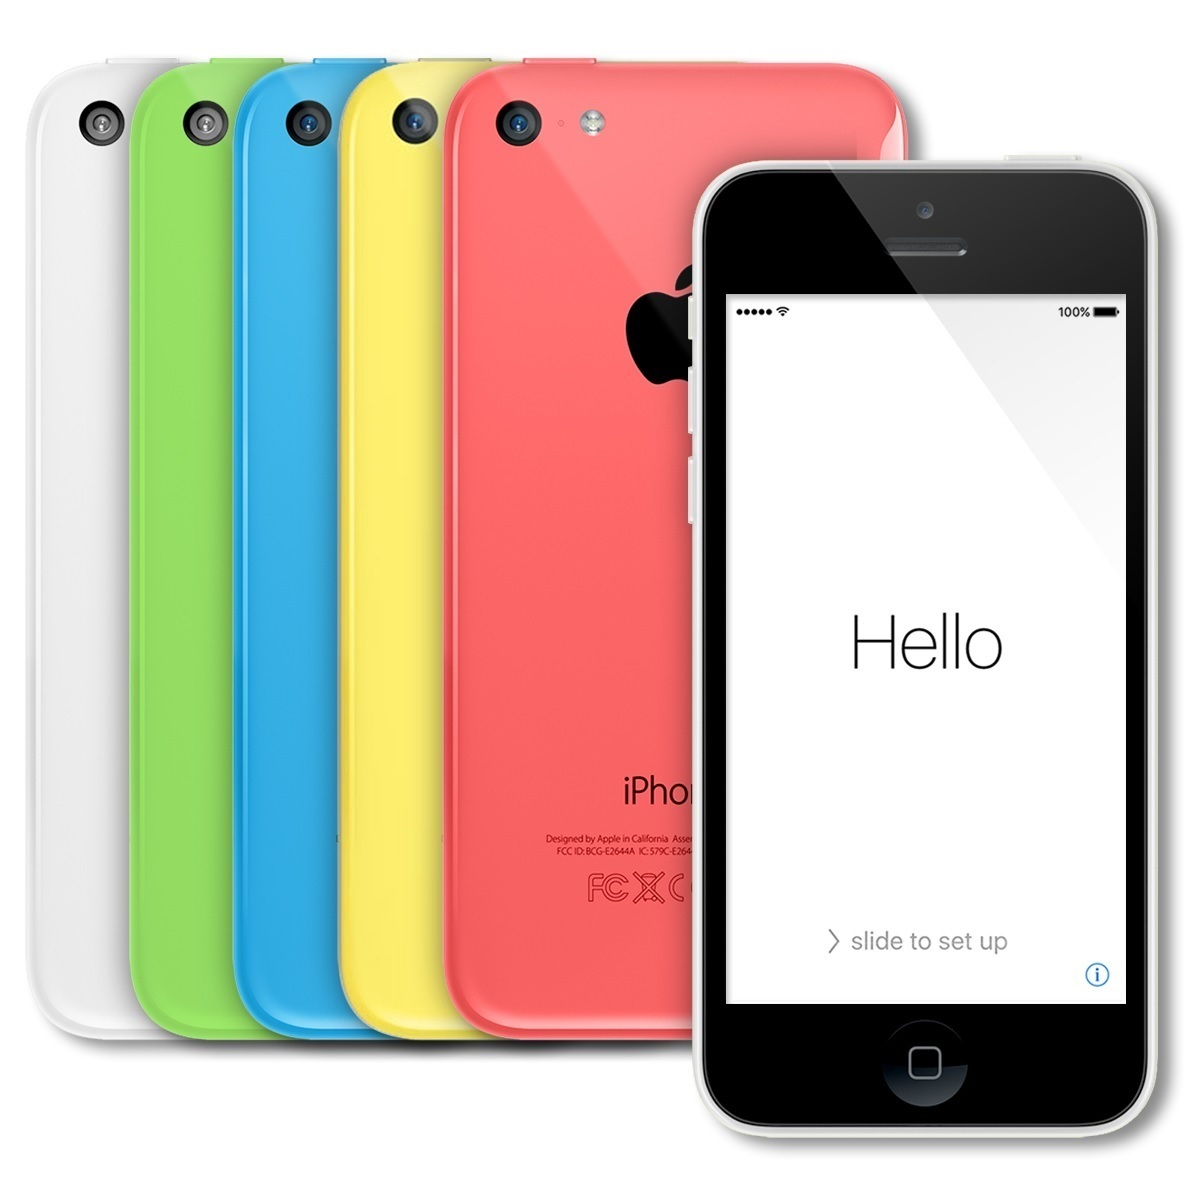 how to delete photos from iphone 5c